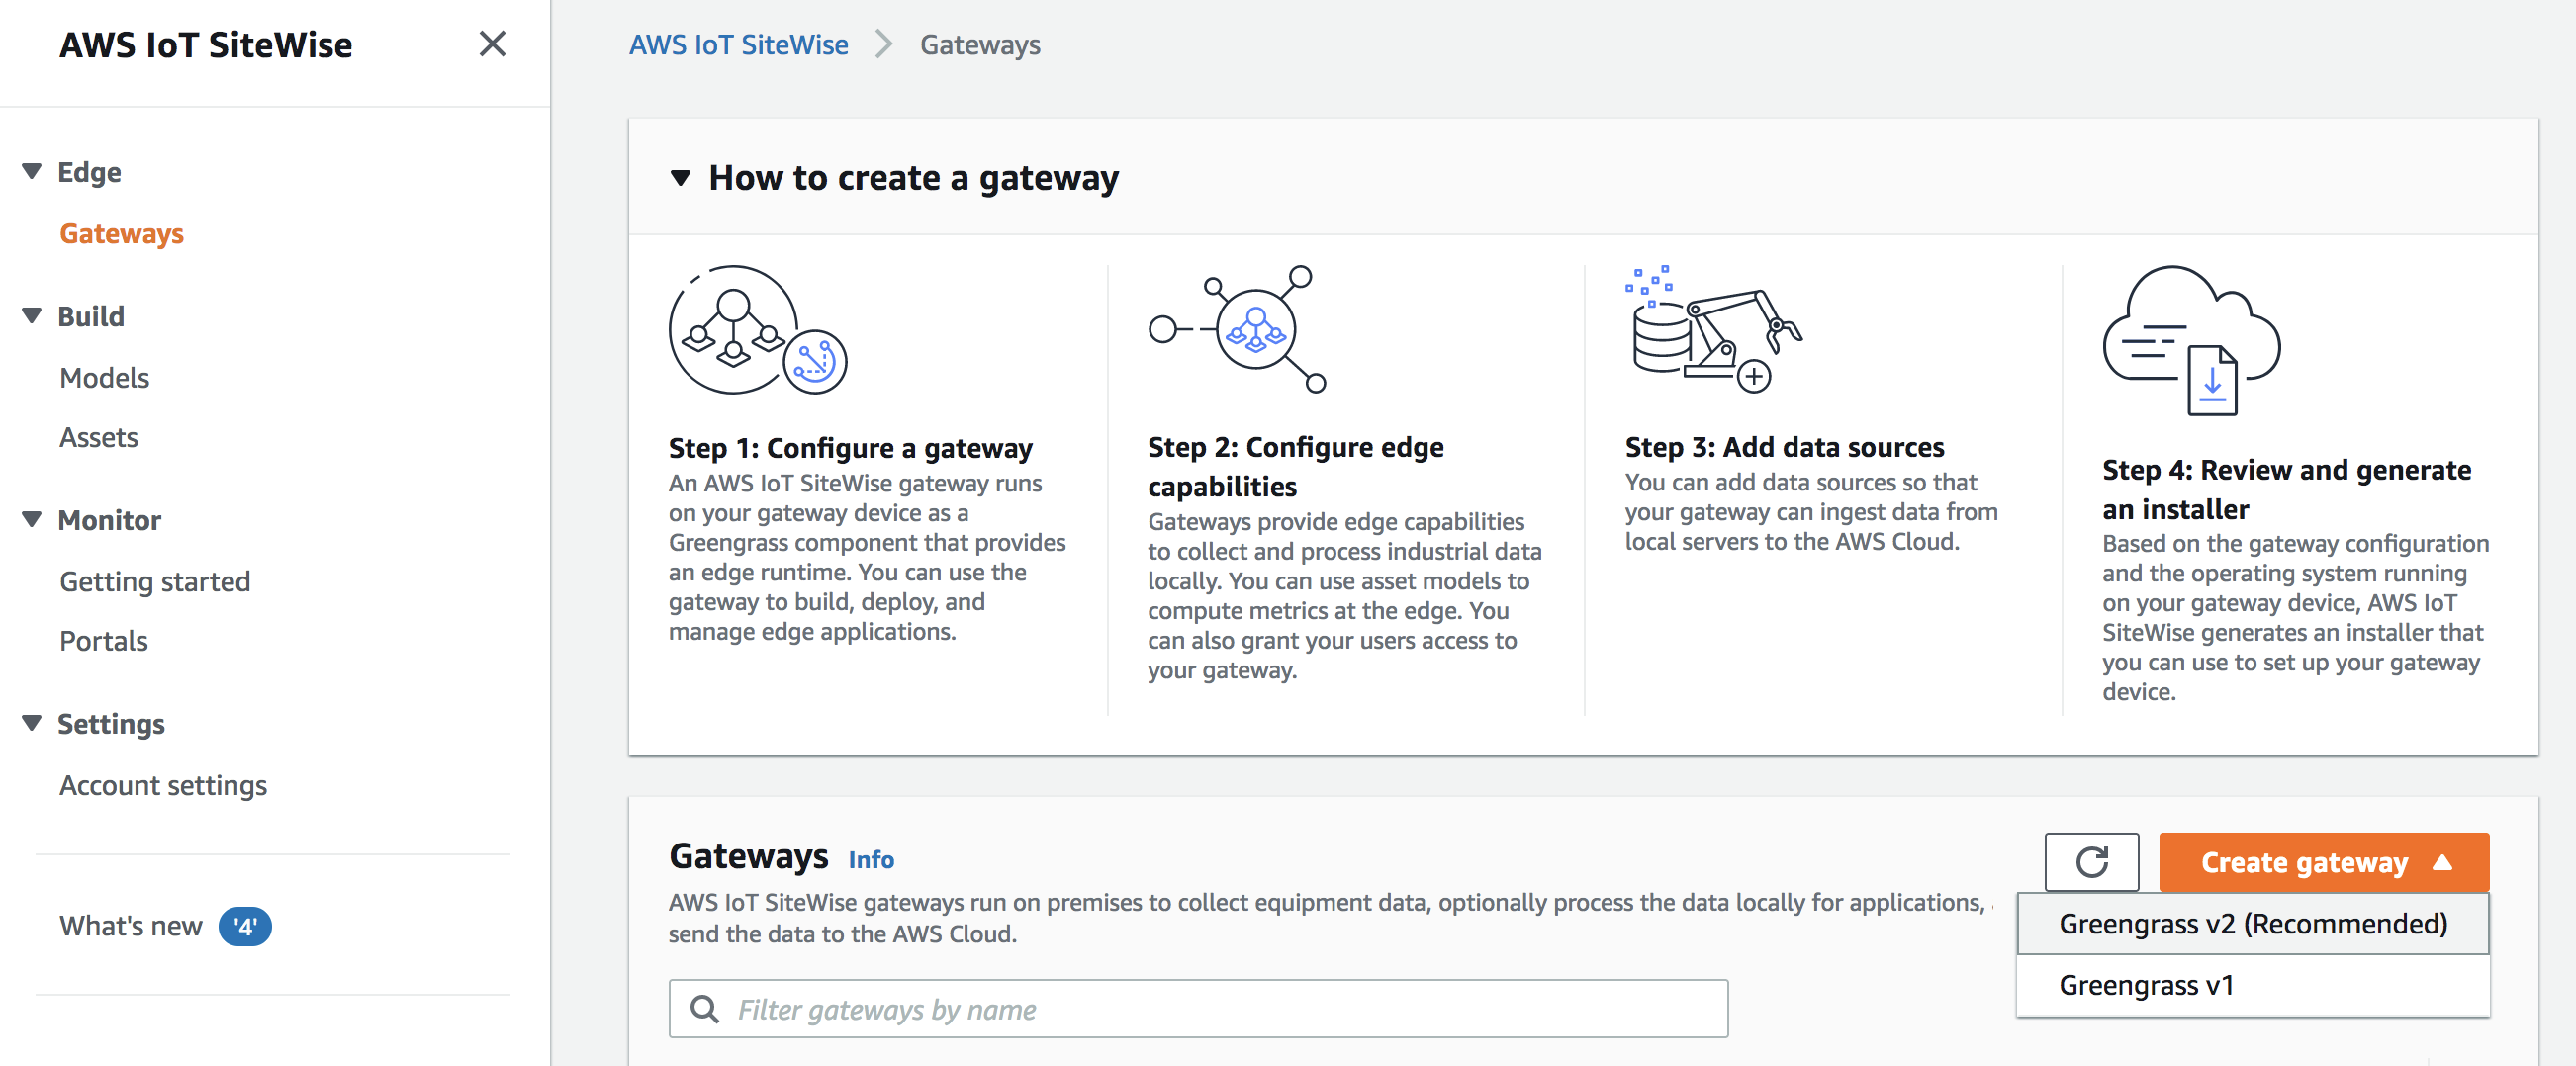 AWS IoT SiteWise Edge Is Now Generally Available for Processing Industrial Equipment Data on Premises